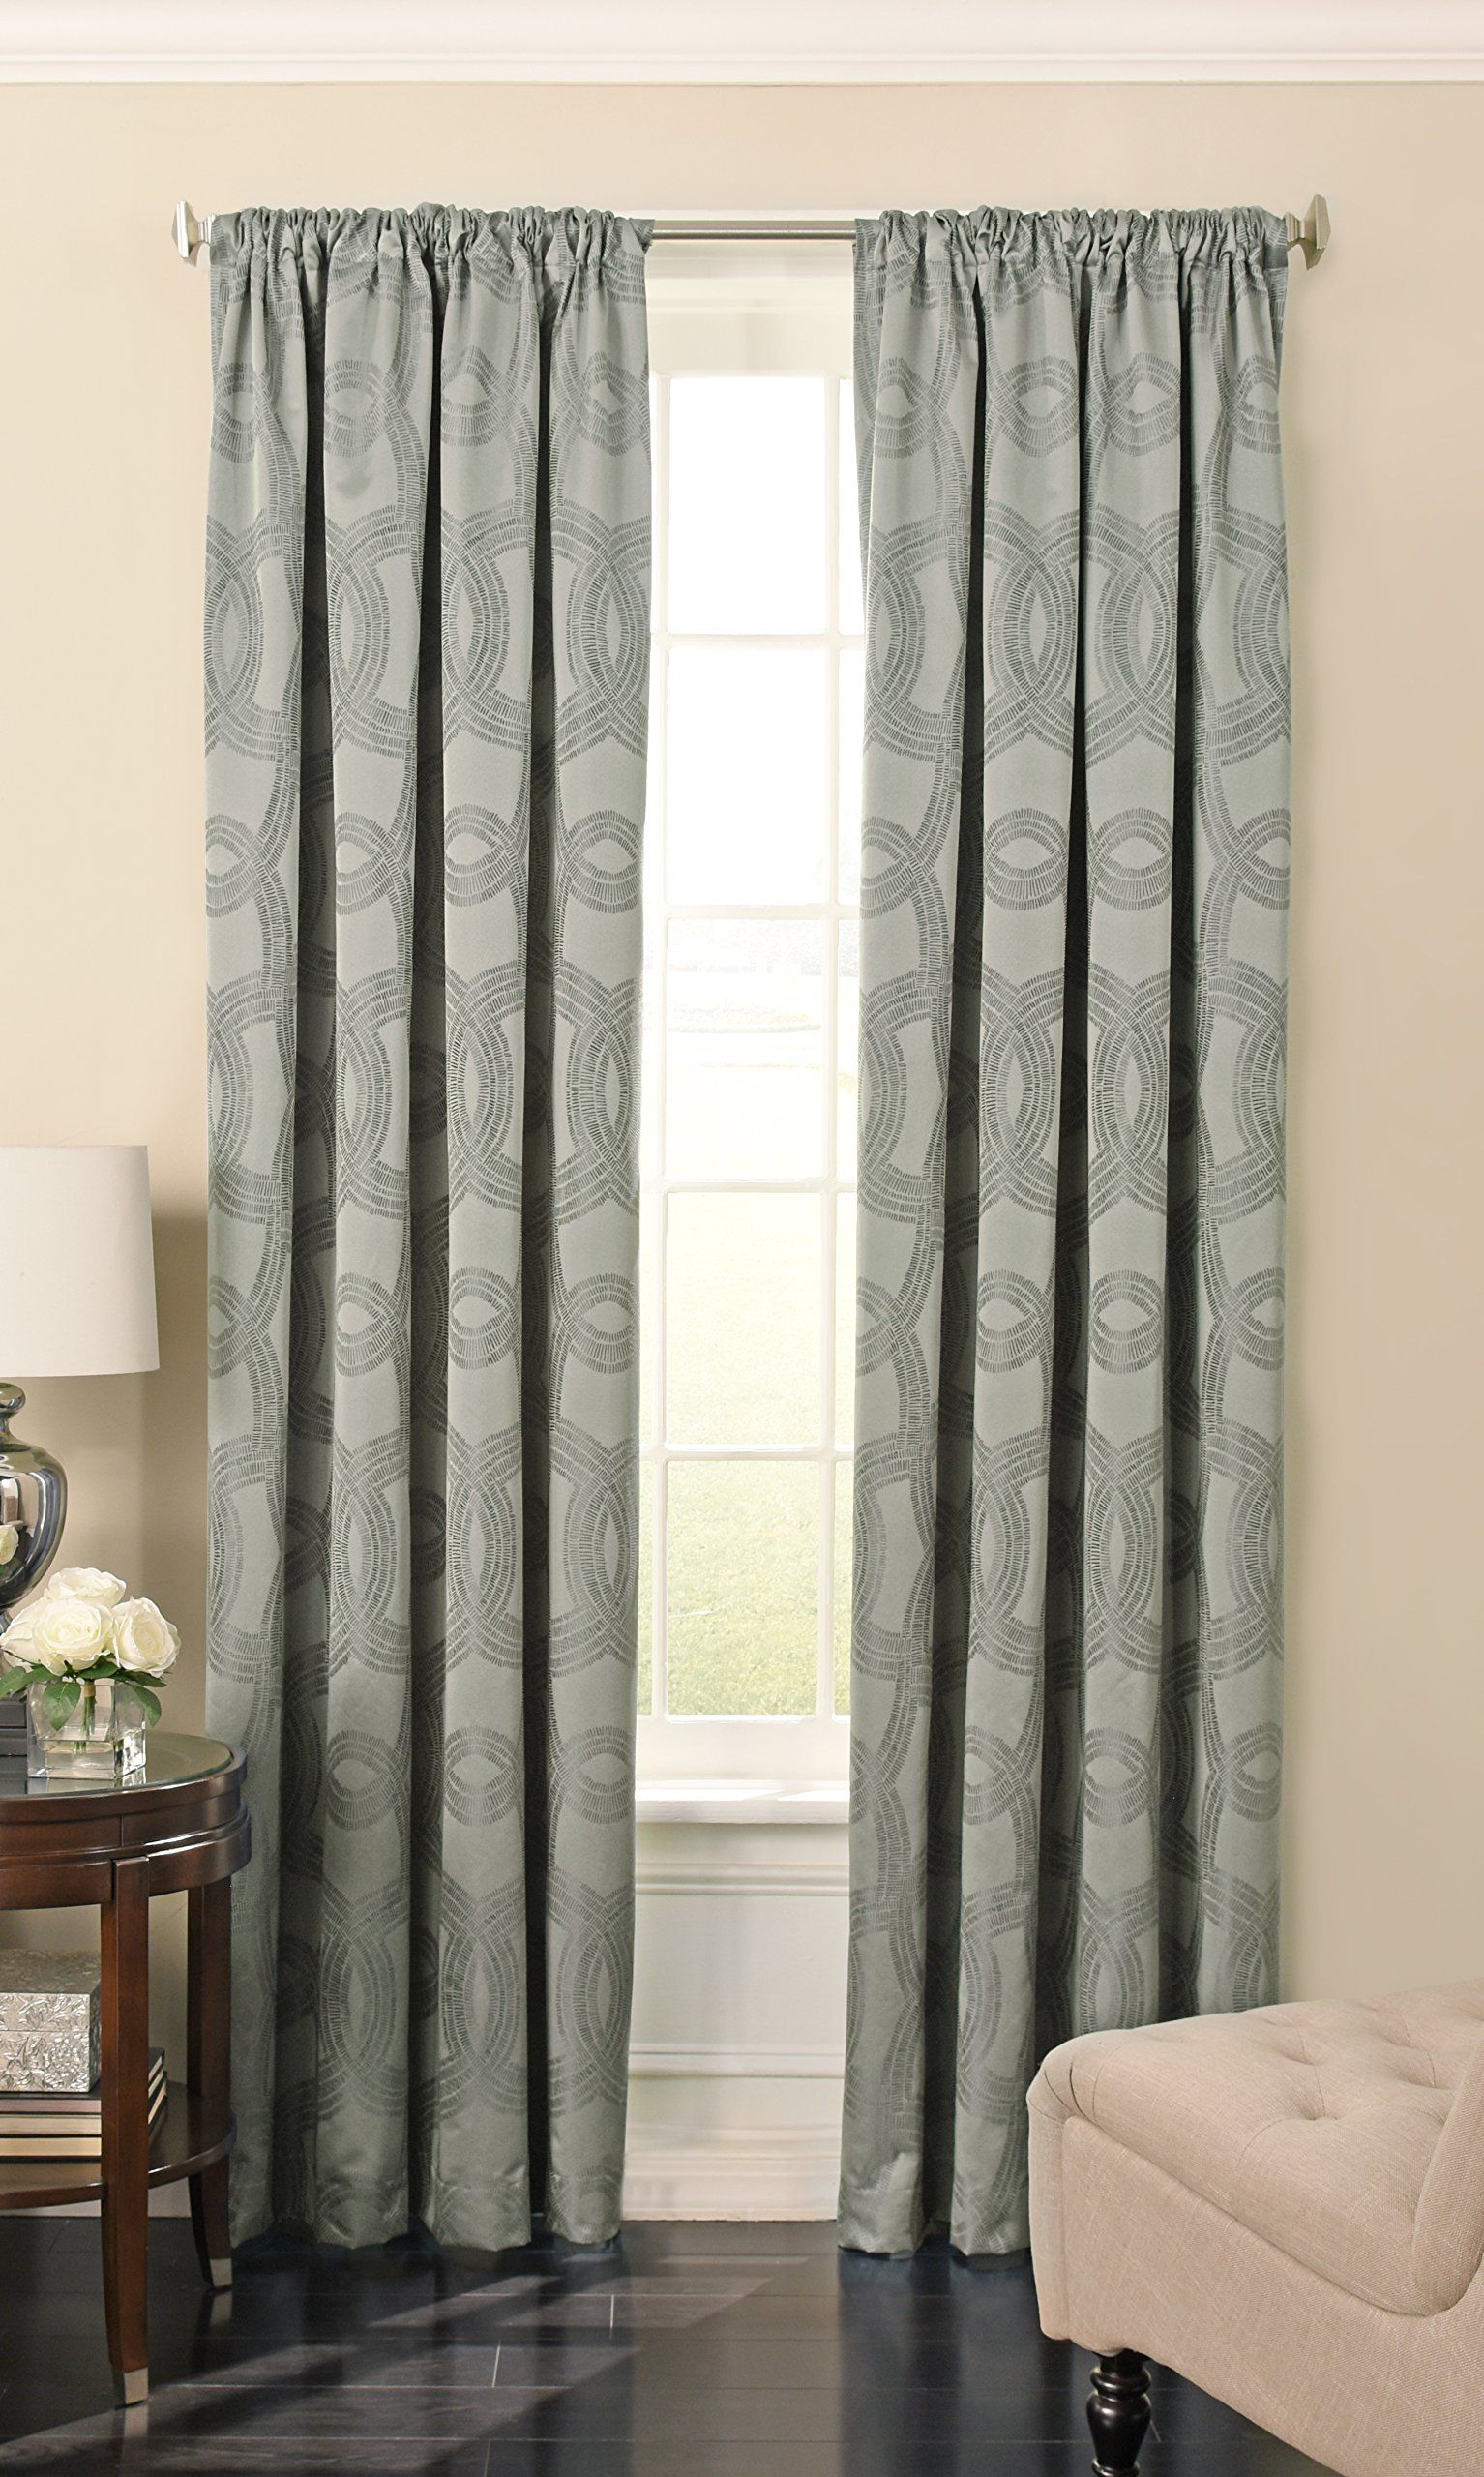 Beautyrest 15779052084ssg Odette 52inch By 84inch Blackout Single Window Curtain Panel Silver Sage You Could